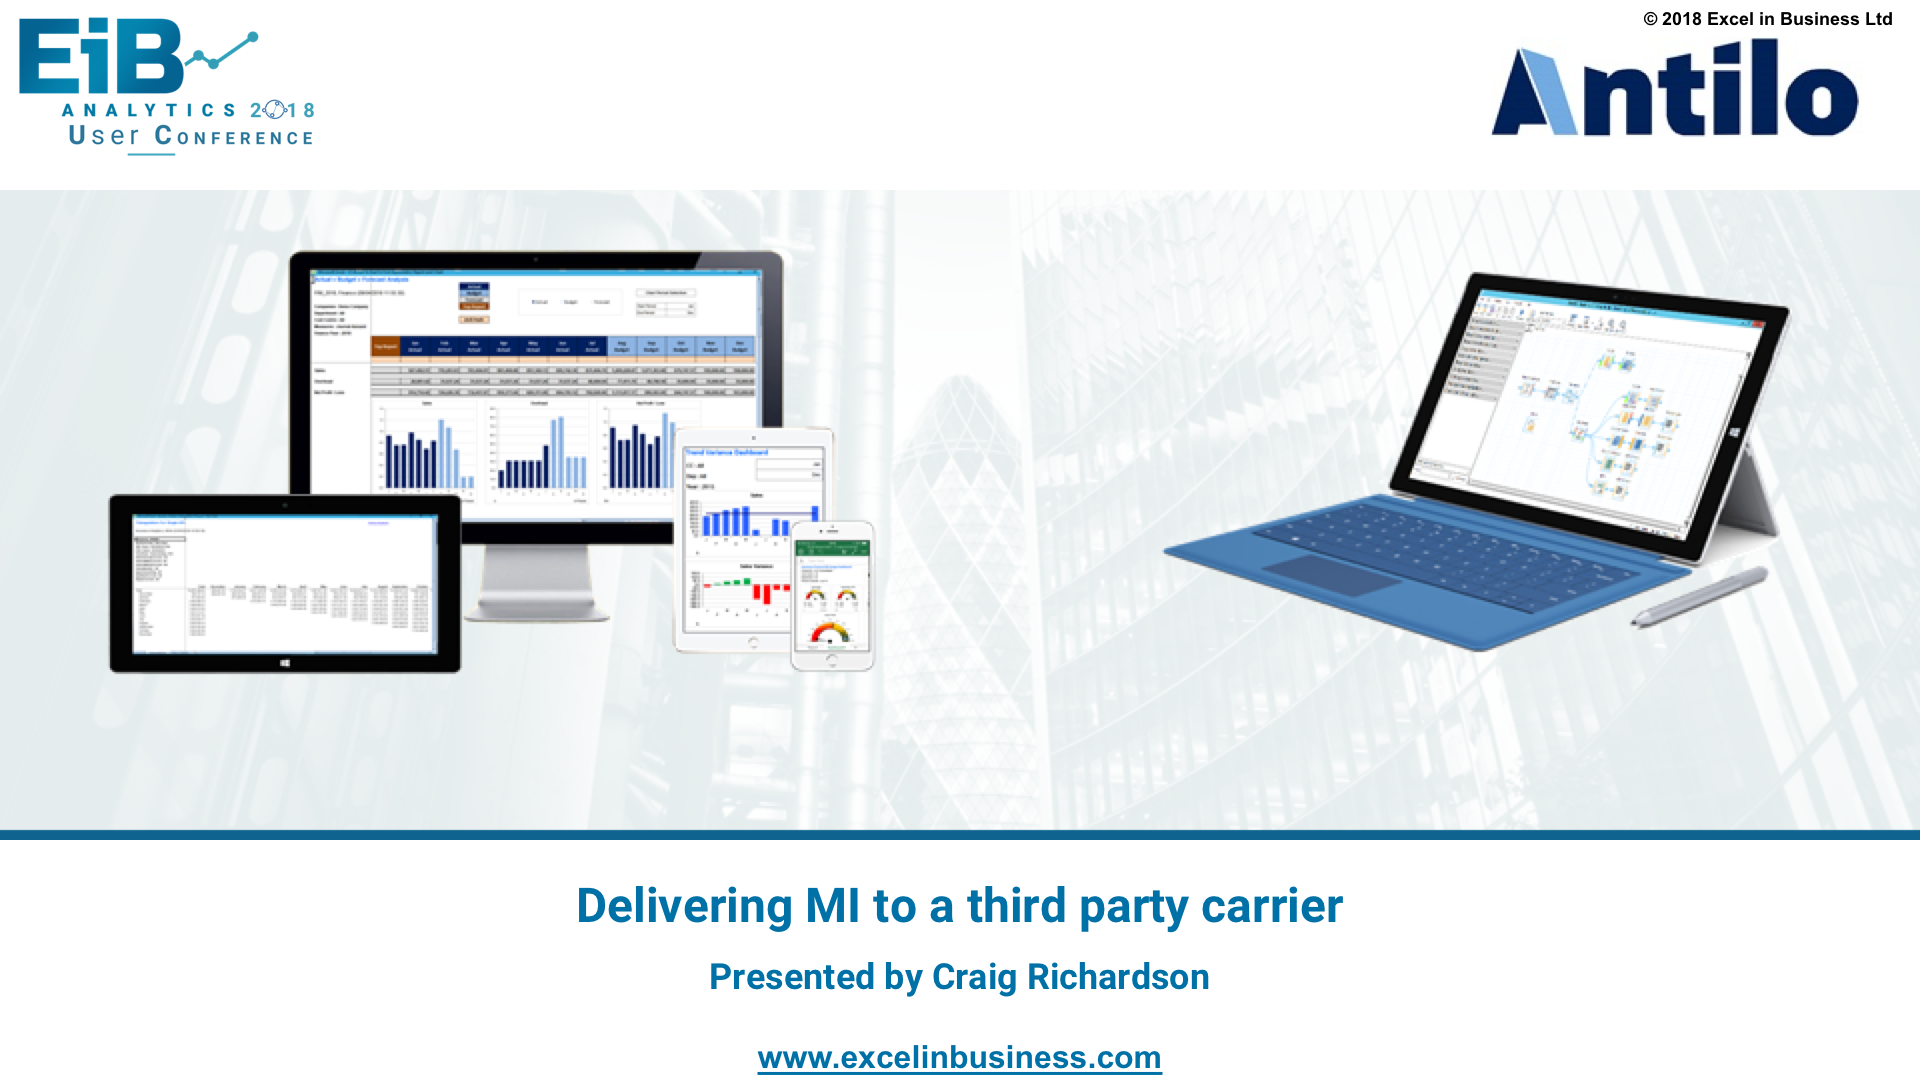 2.0 - Delivering MI to a third party carrier - Craig Richardson